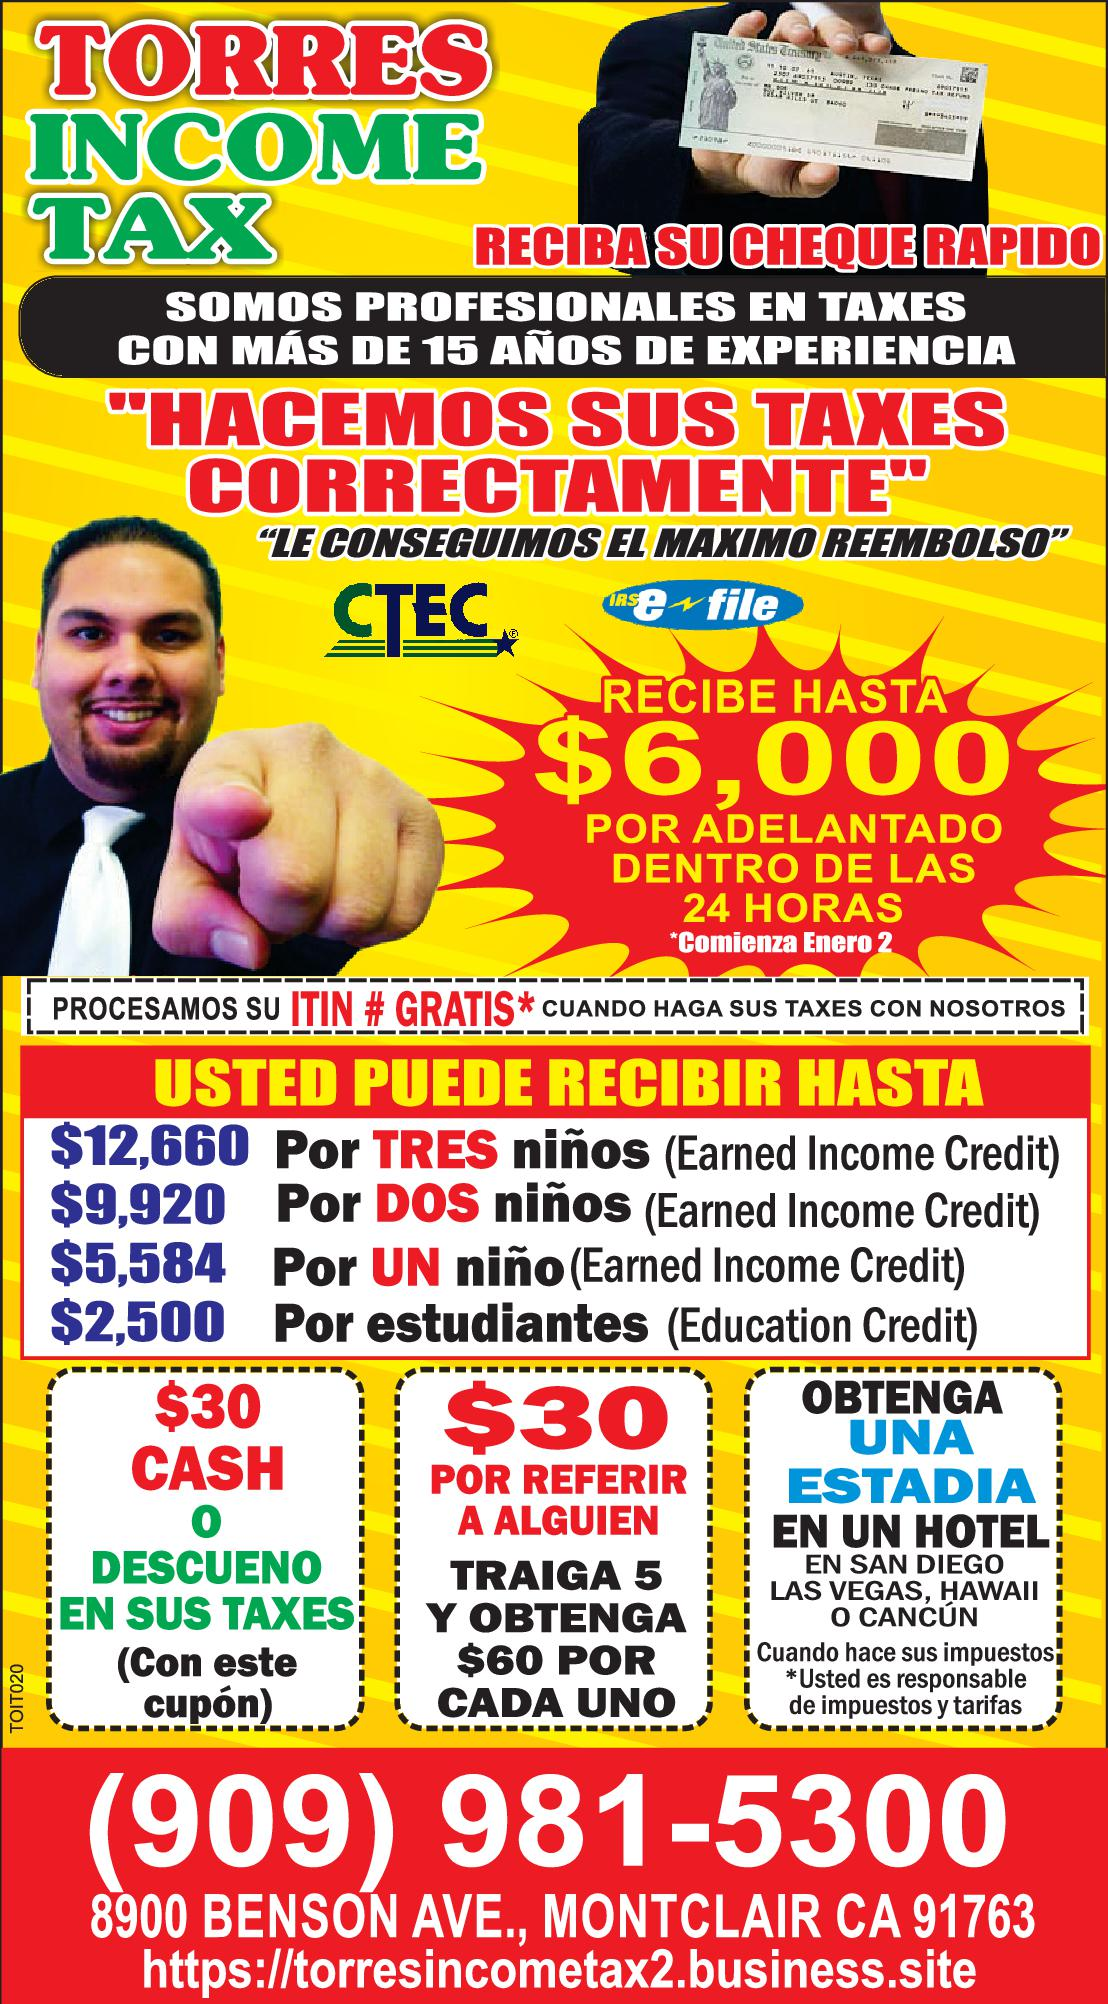 Torres Income Tax